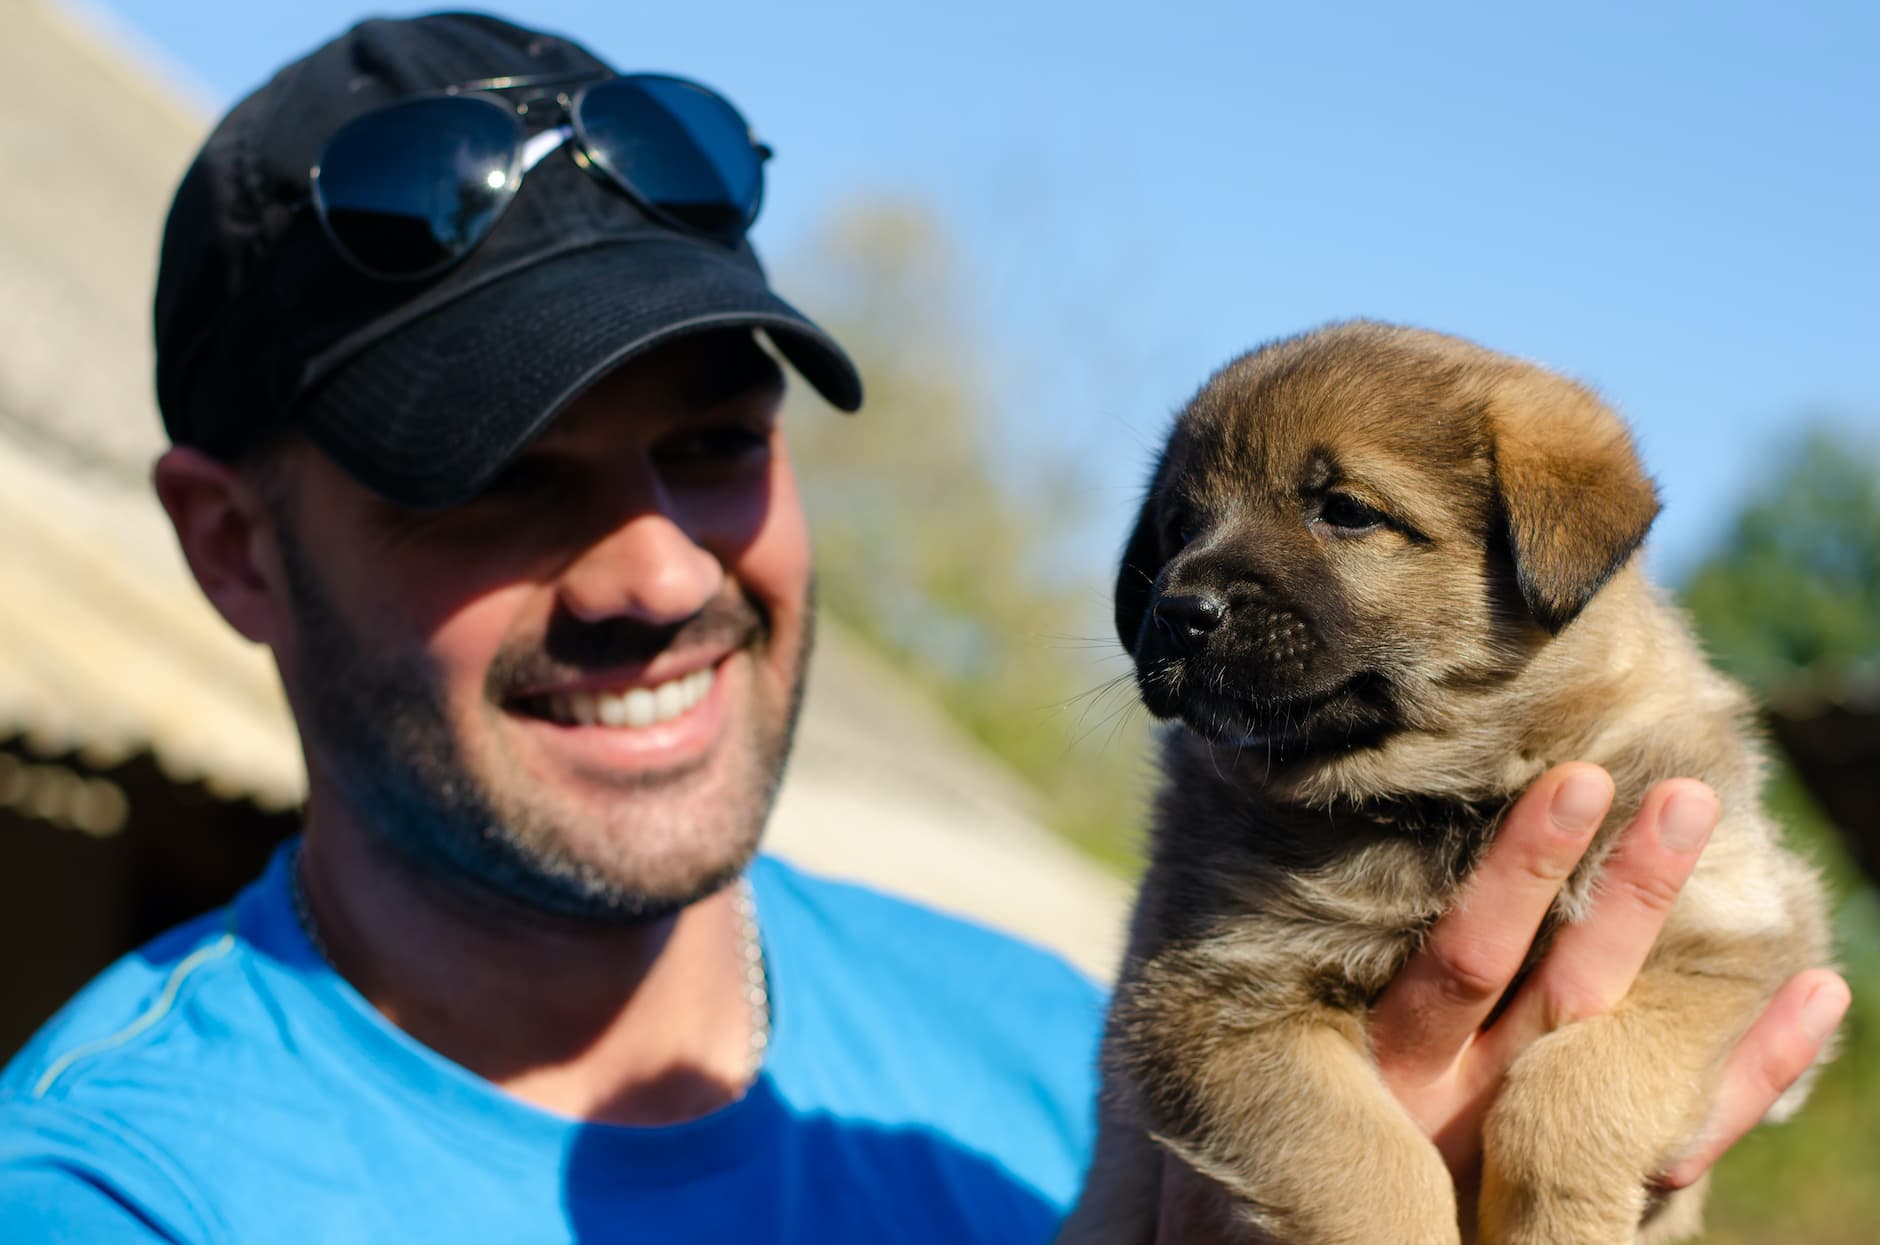 man wearing black baseball cap smiling and holding up a puppy